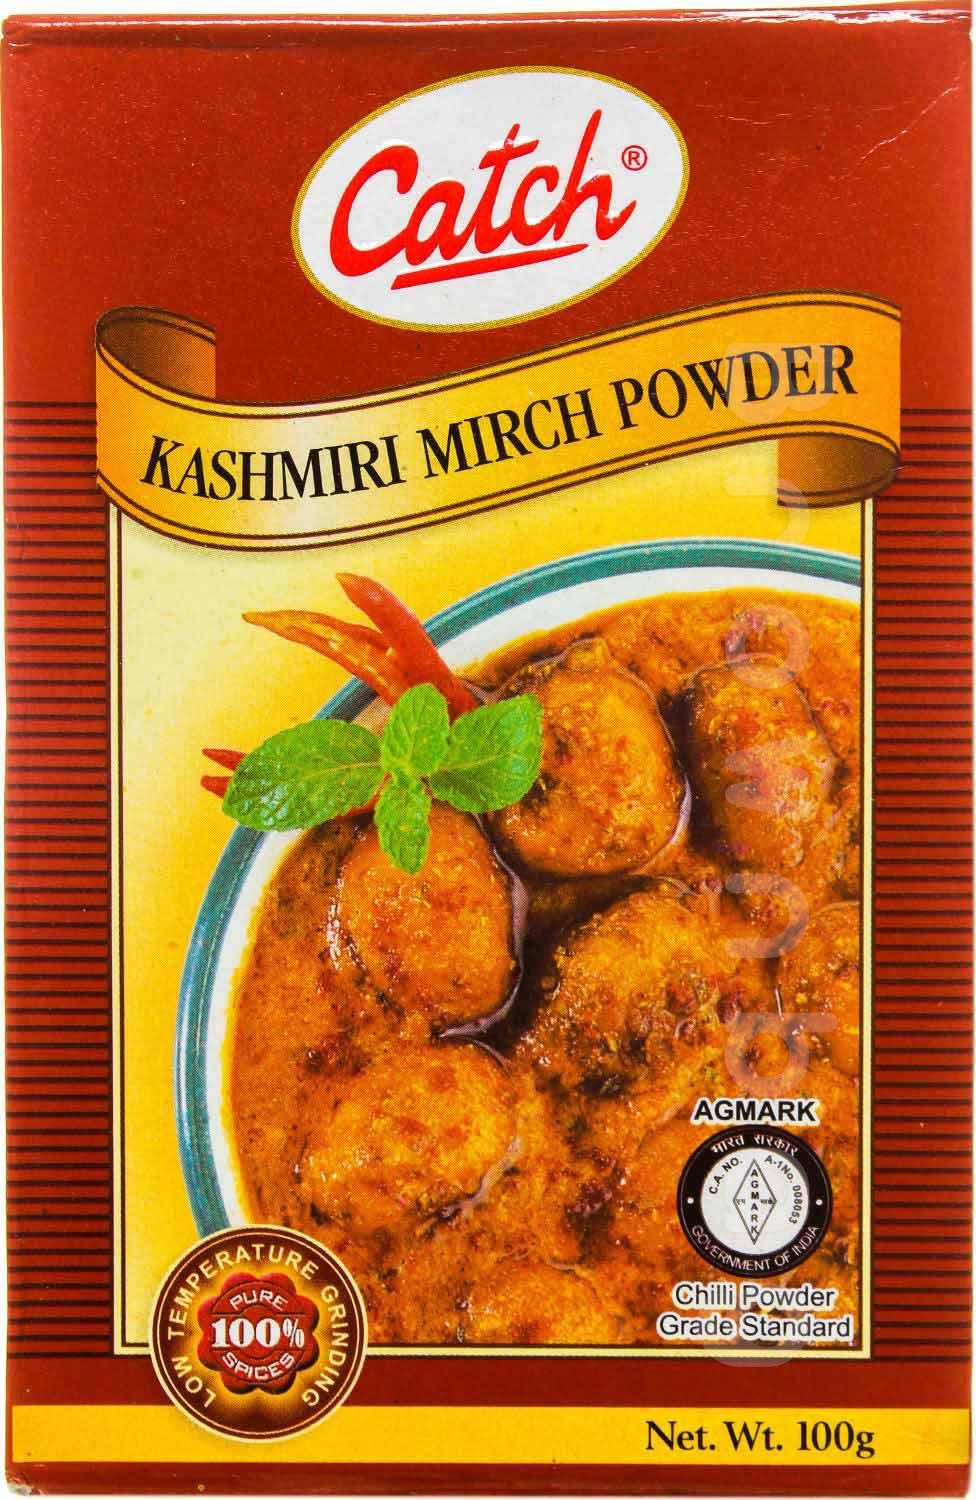 Catch Kashmiri Mirch Powder